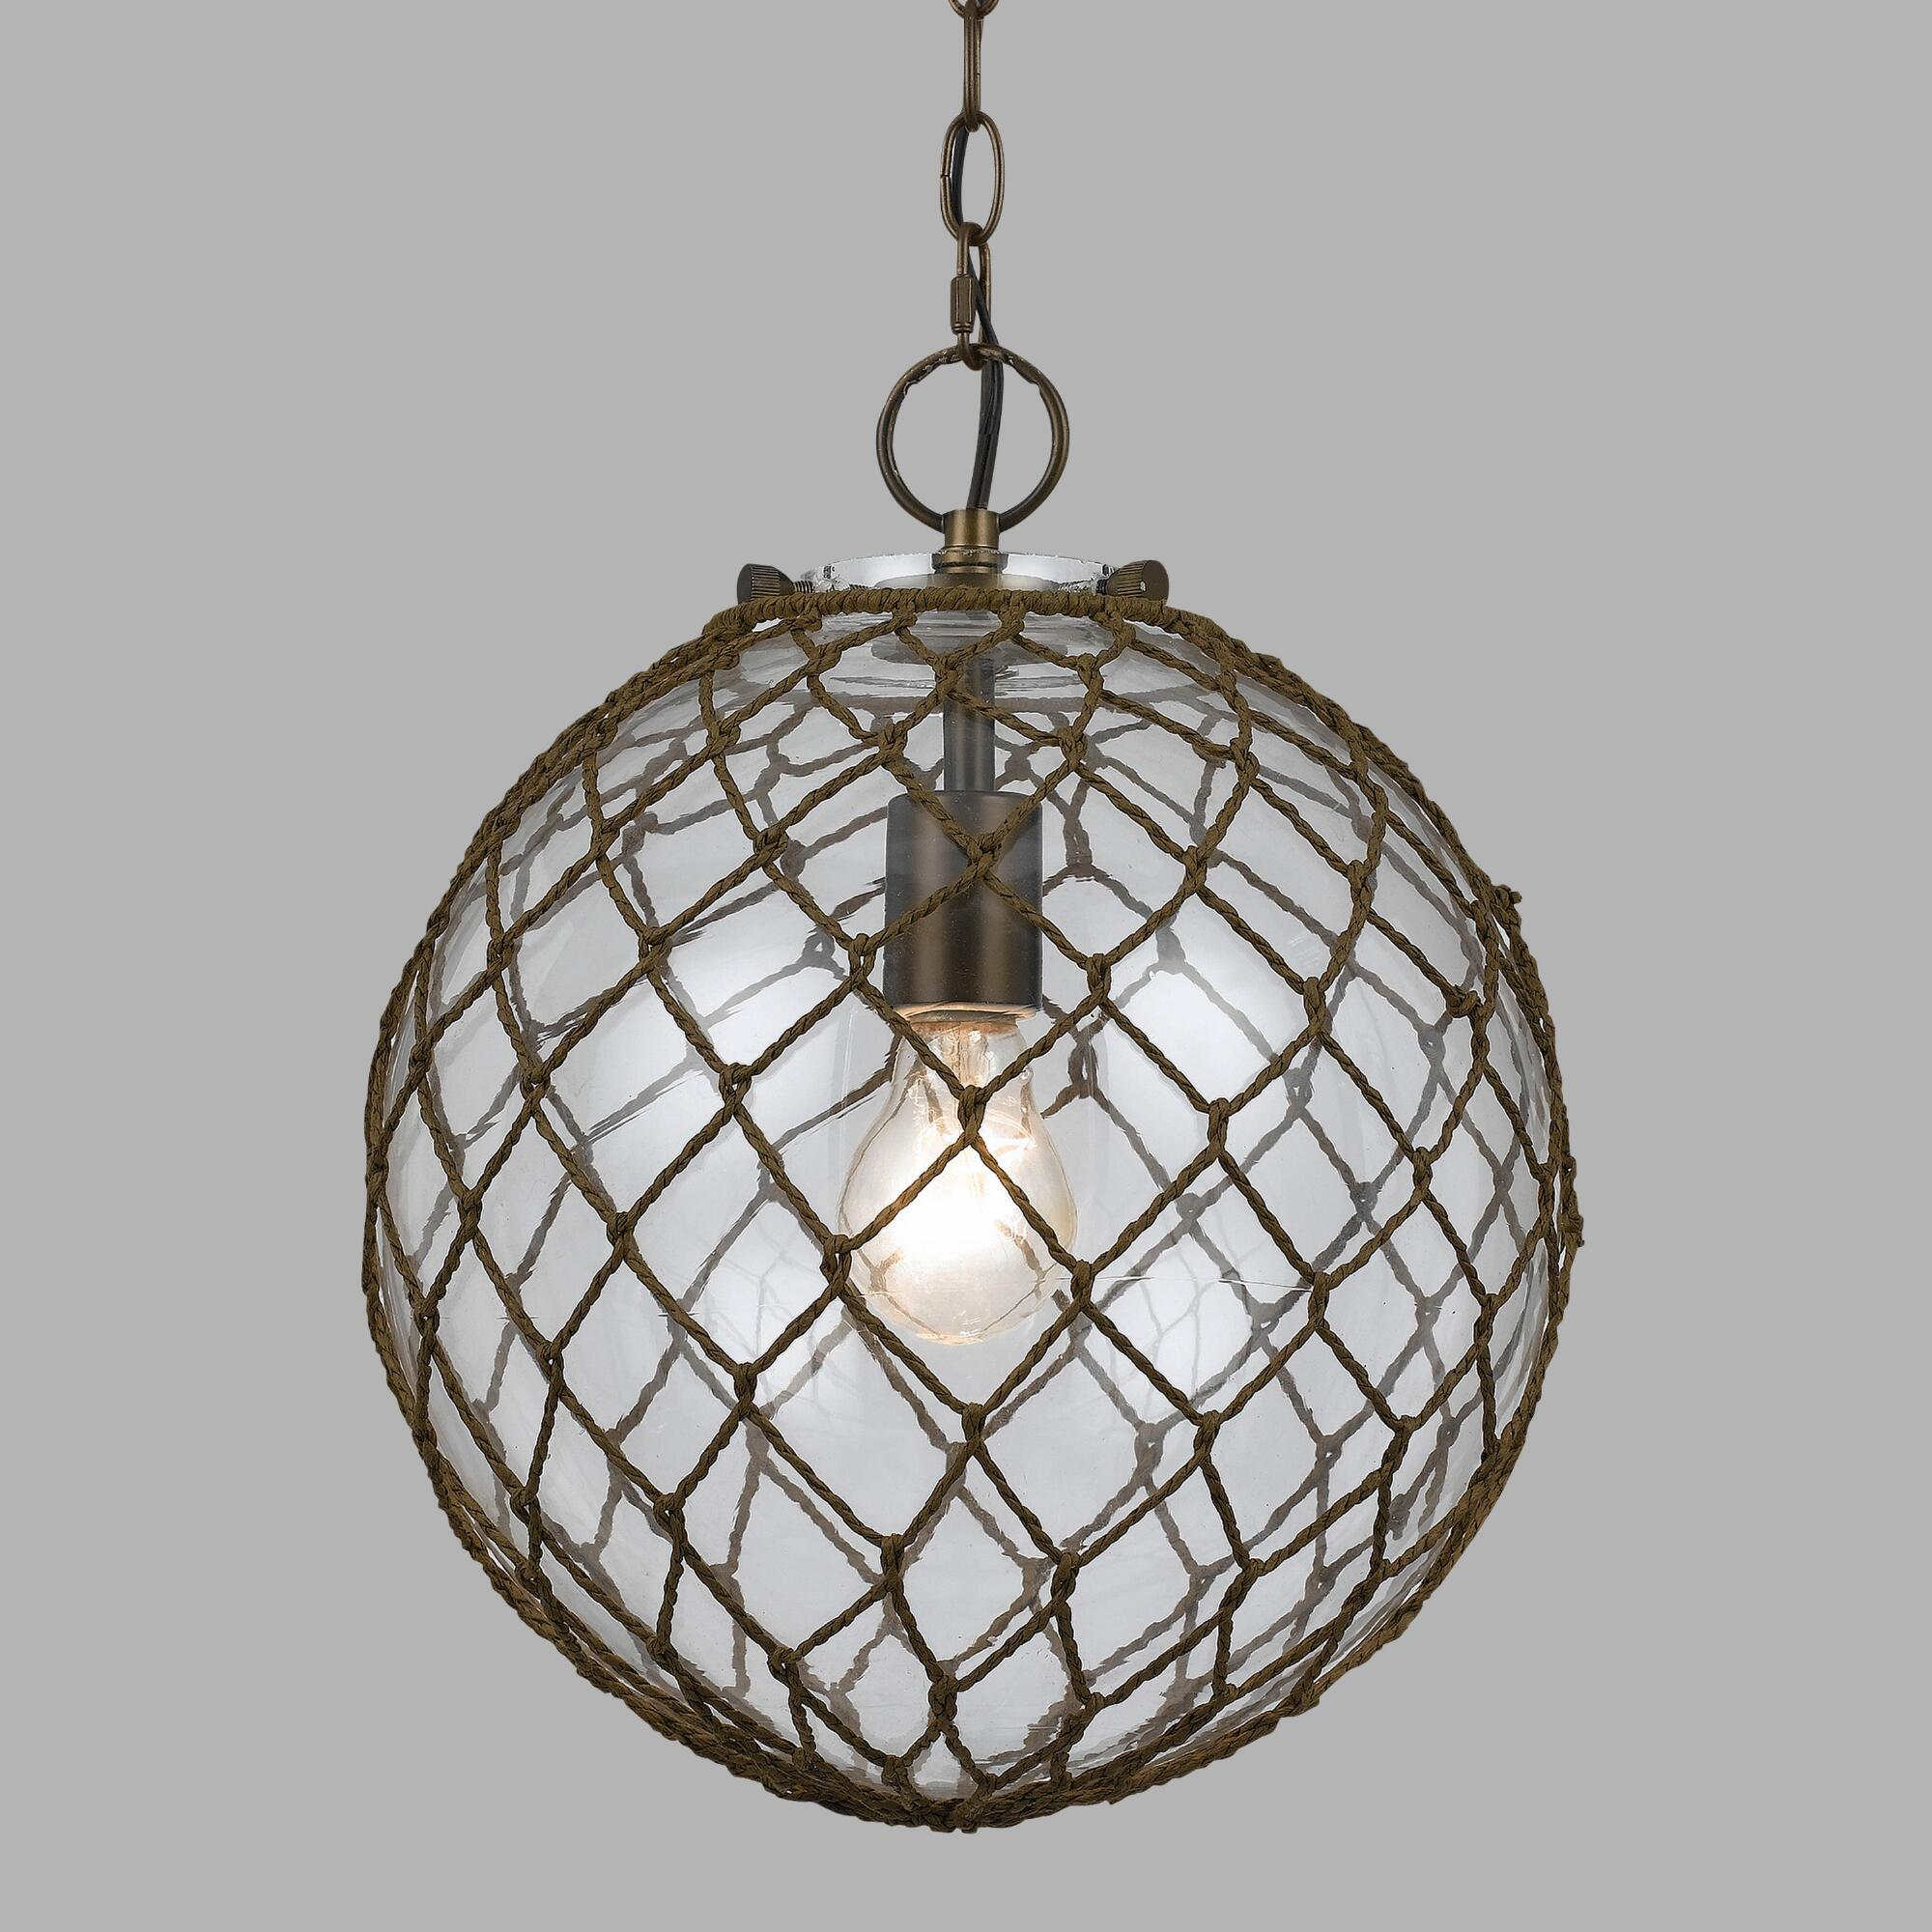 Hanging Light Round: Round Rope-Wrapped Bubble Glass Burnett Pendant Lamp